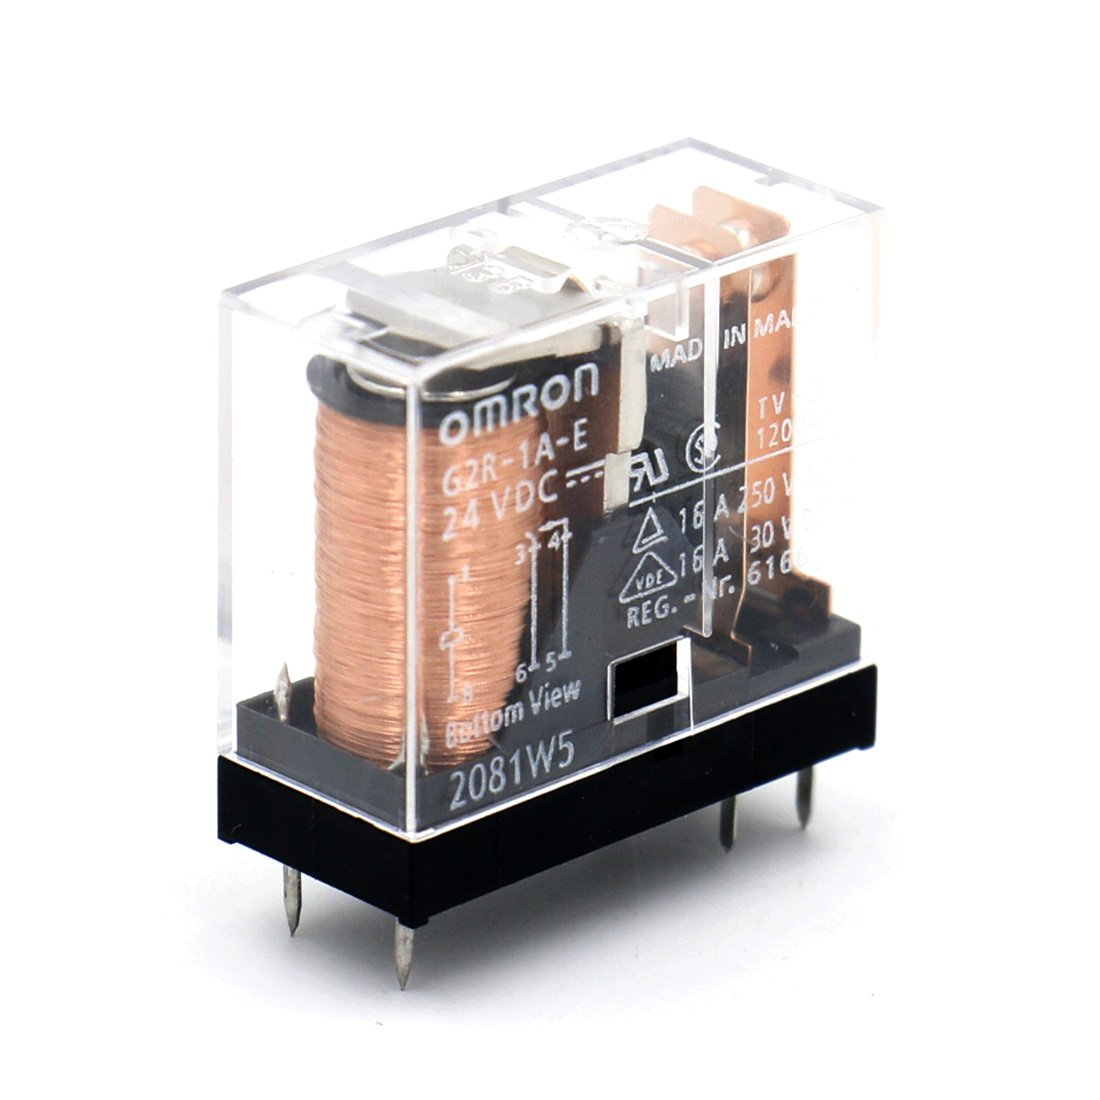 OMRON ELECTRONIC COMPONENTS G2R-1A-E-DC24 POWER RELAY SPST-NO 24VDC, 16A, PC BOARD